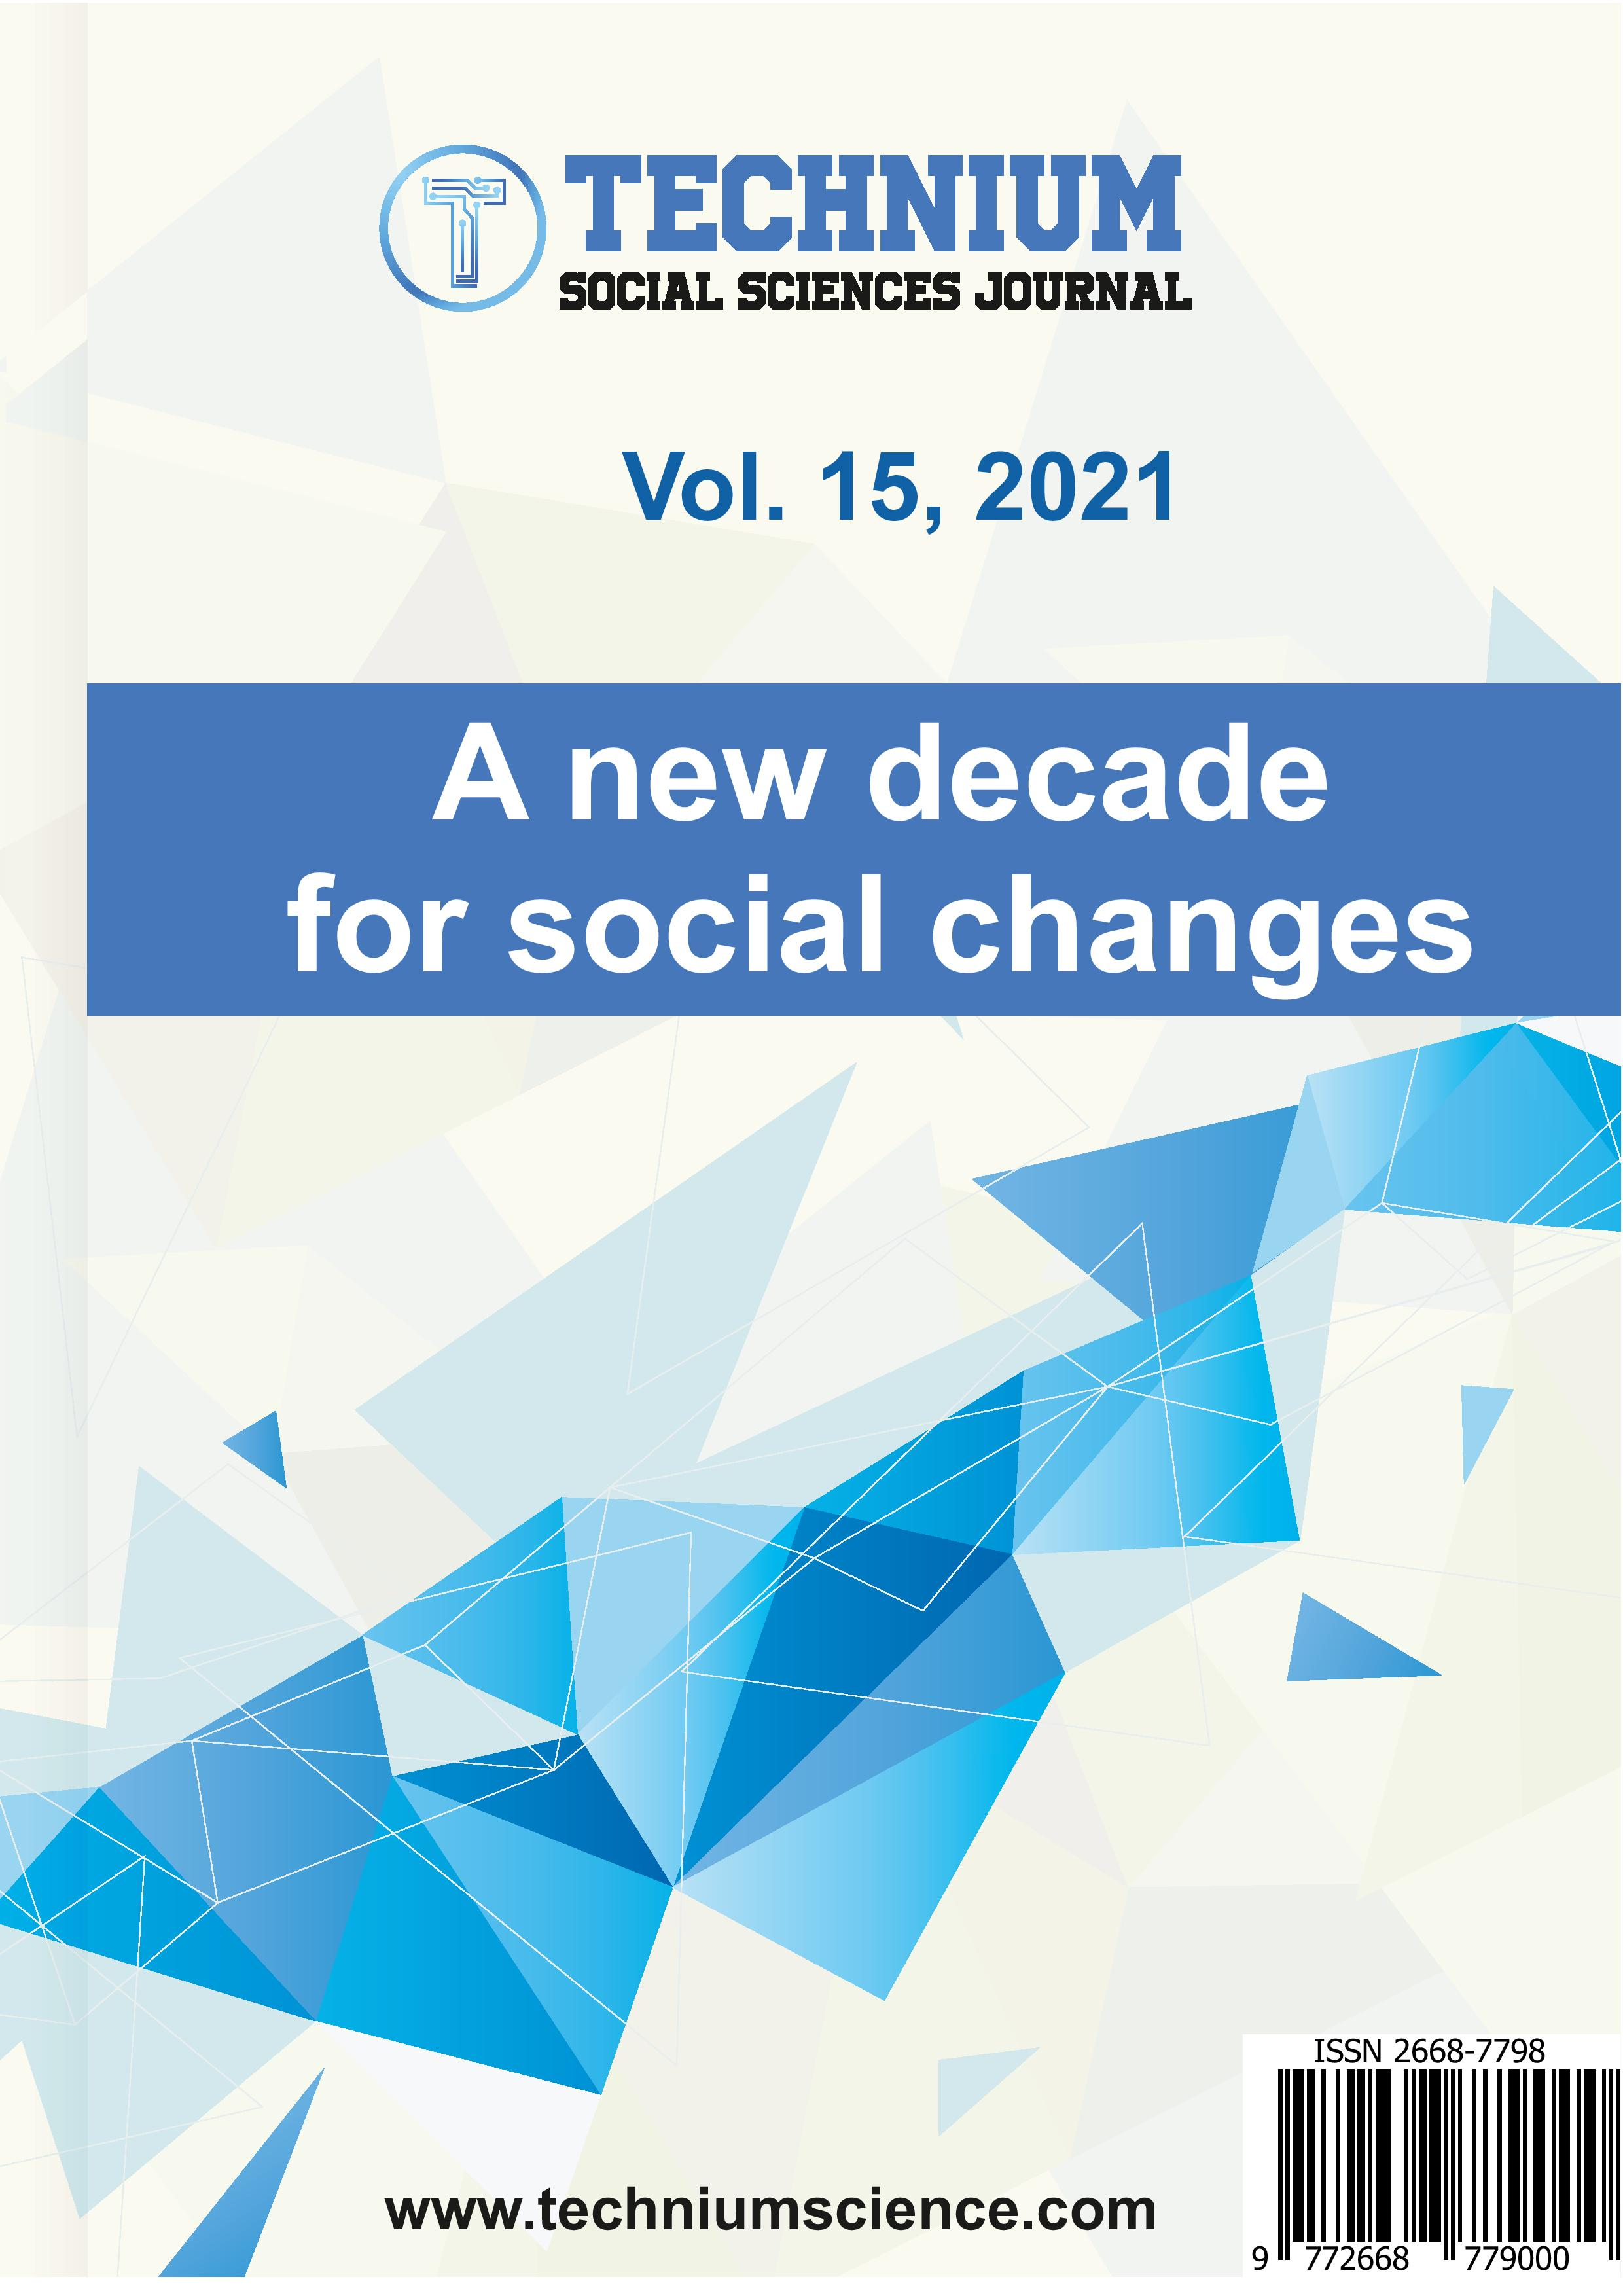 View Vol. 15 (2021): A new decade for social changes